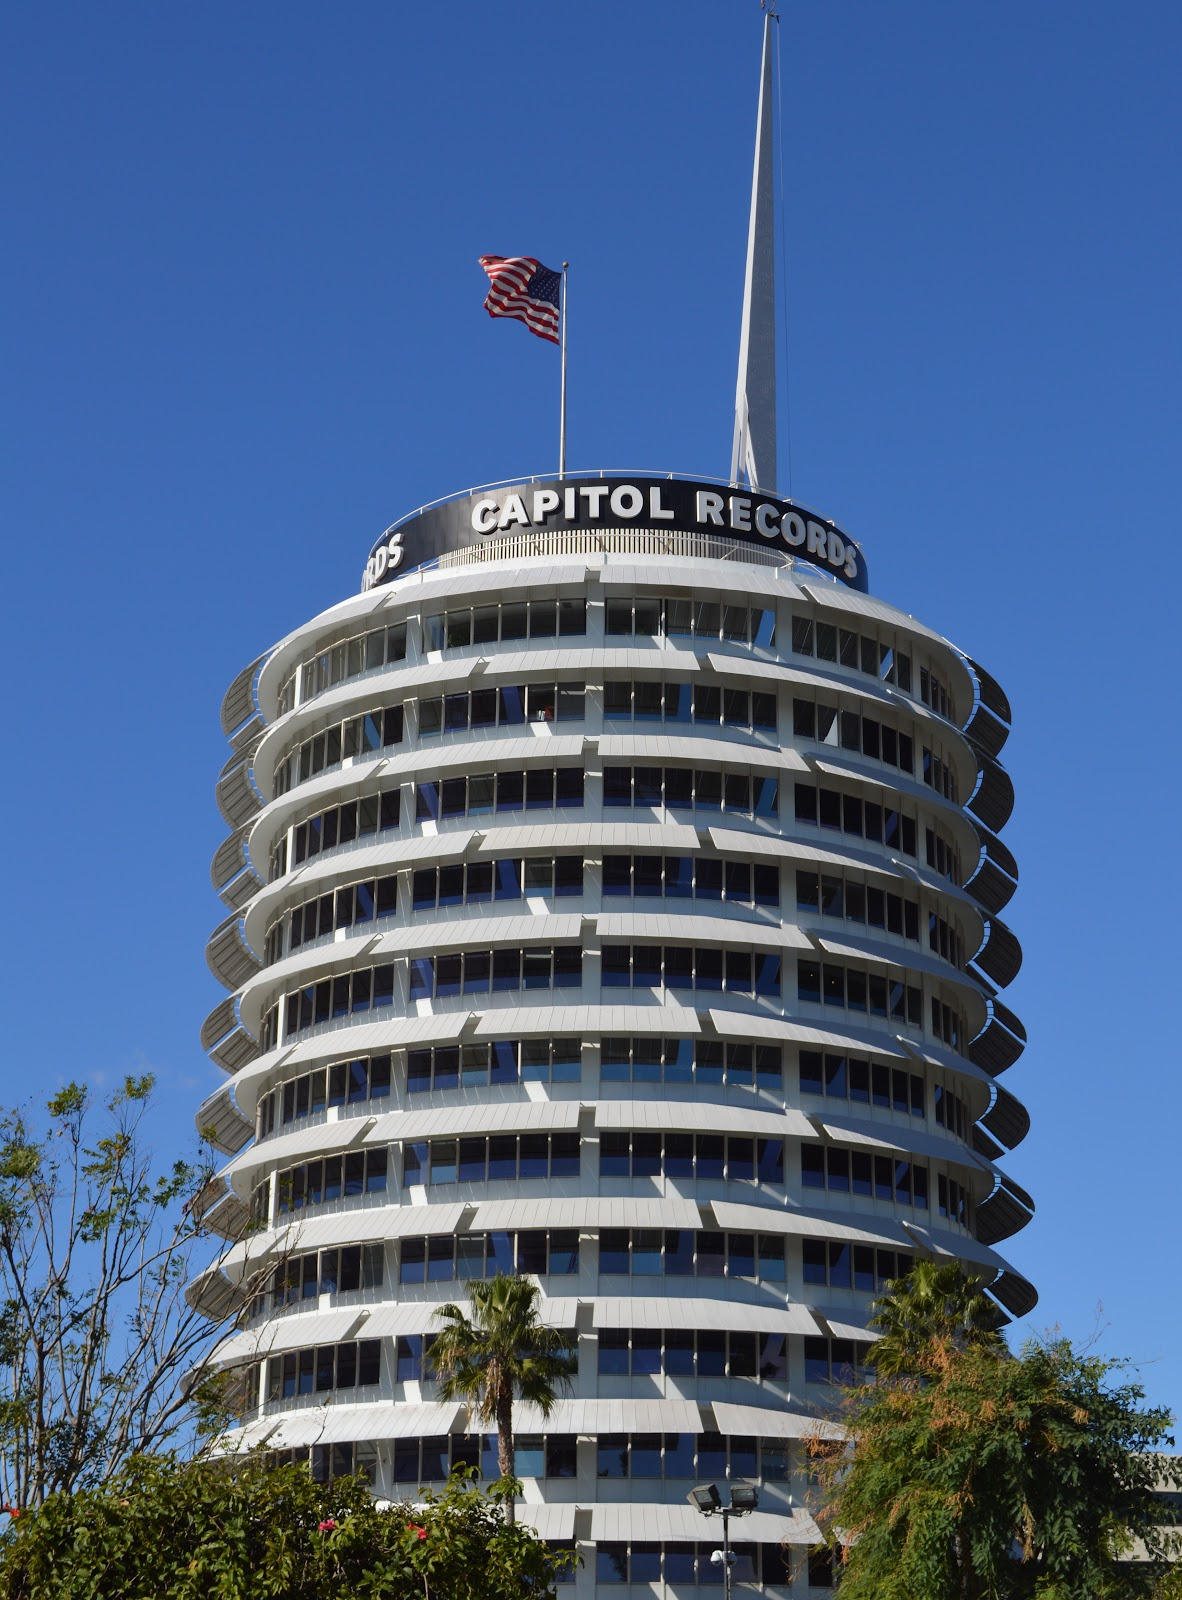 The Capitol Records Building is a 13 story tower in Hollywood